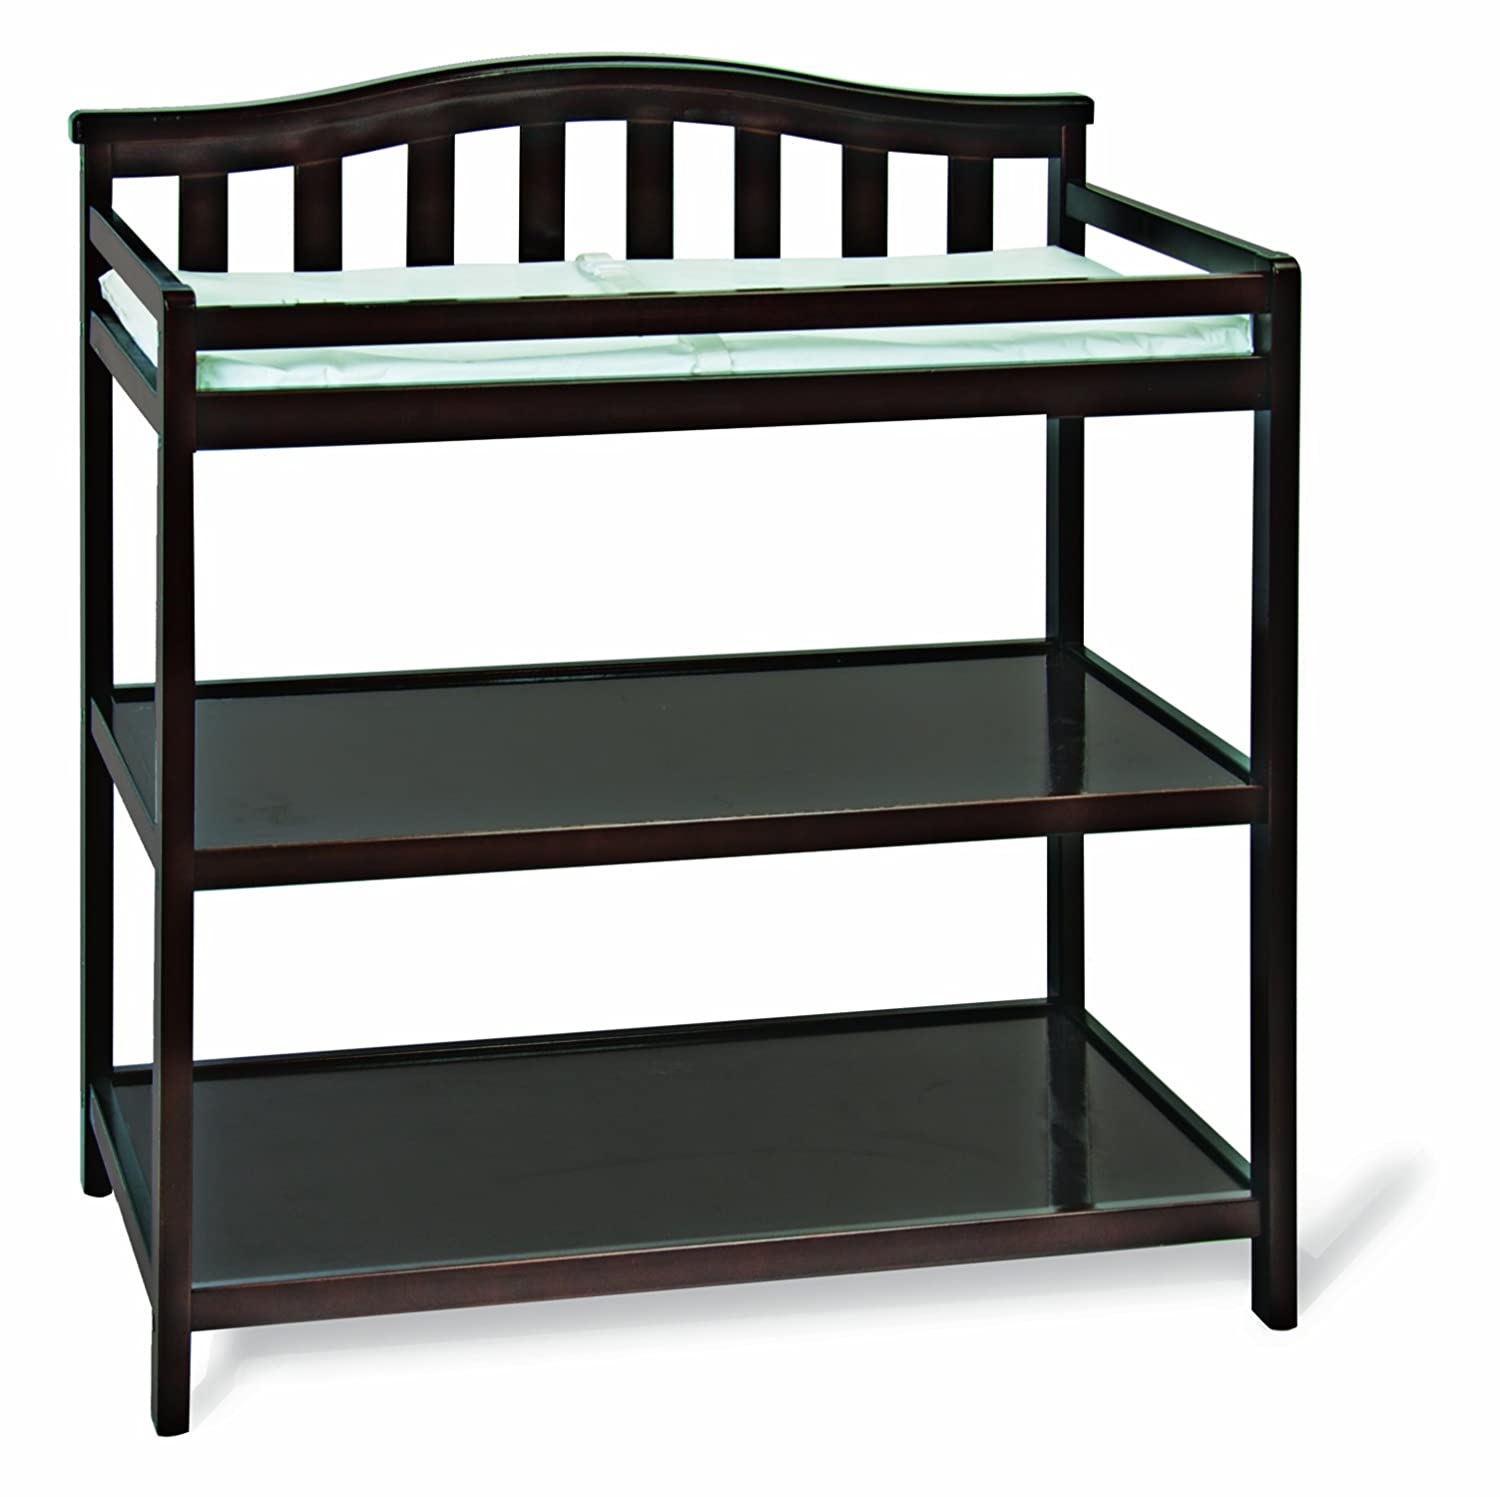 Child Craft Arched Top Changing Table with Pad, Jamocha